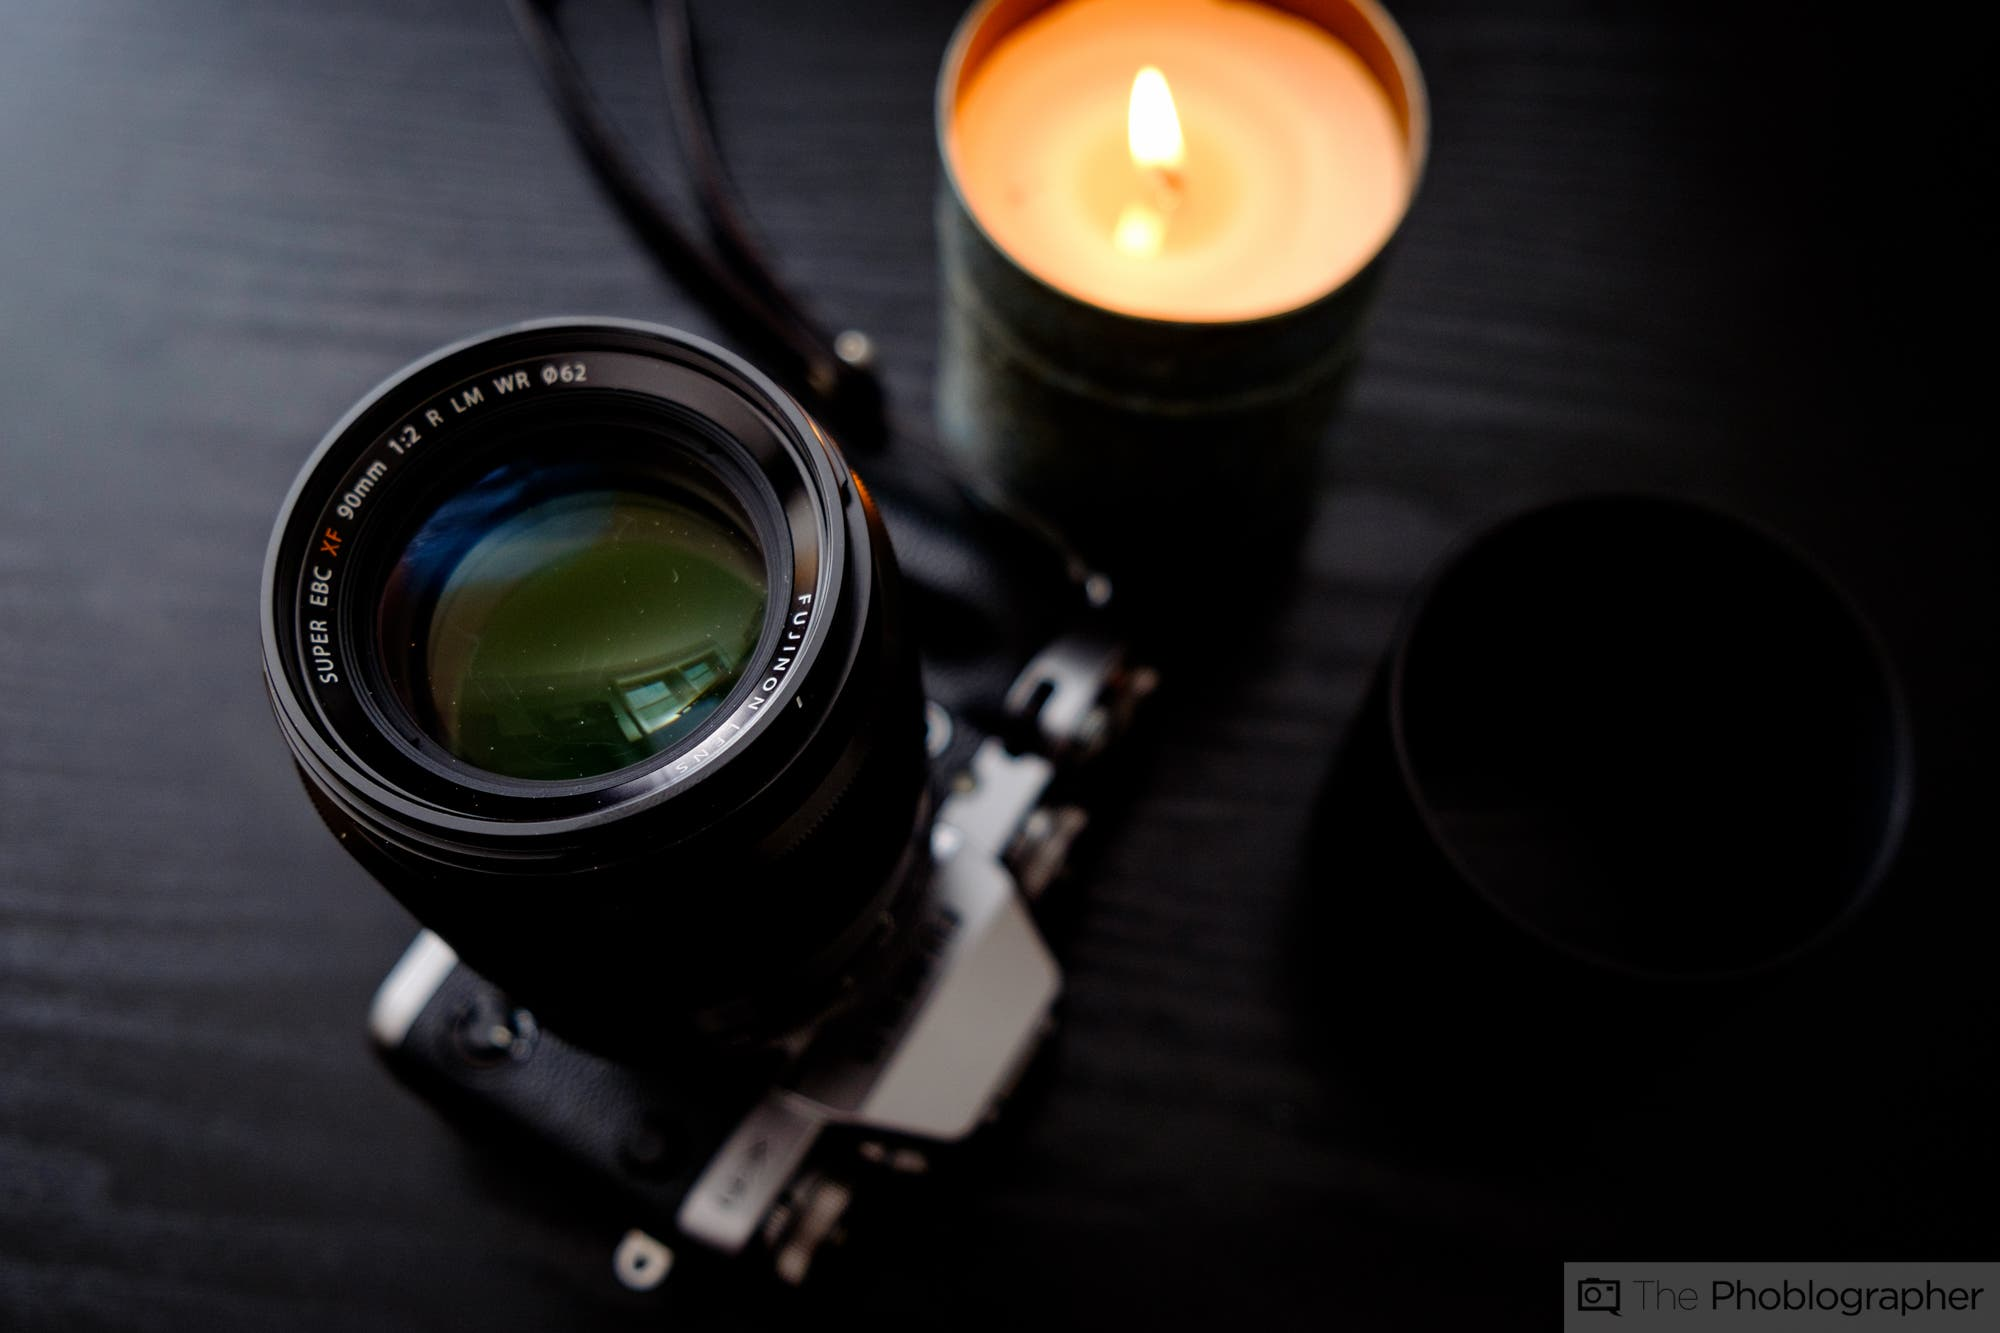 The Fujifilm Lenses You Want Are in Stock